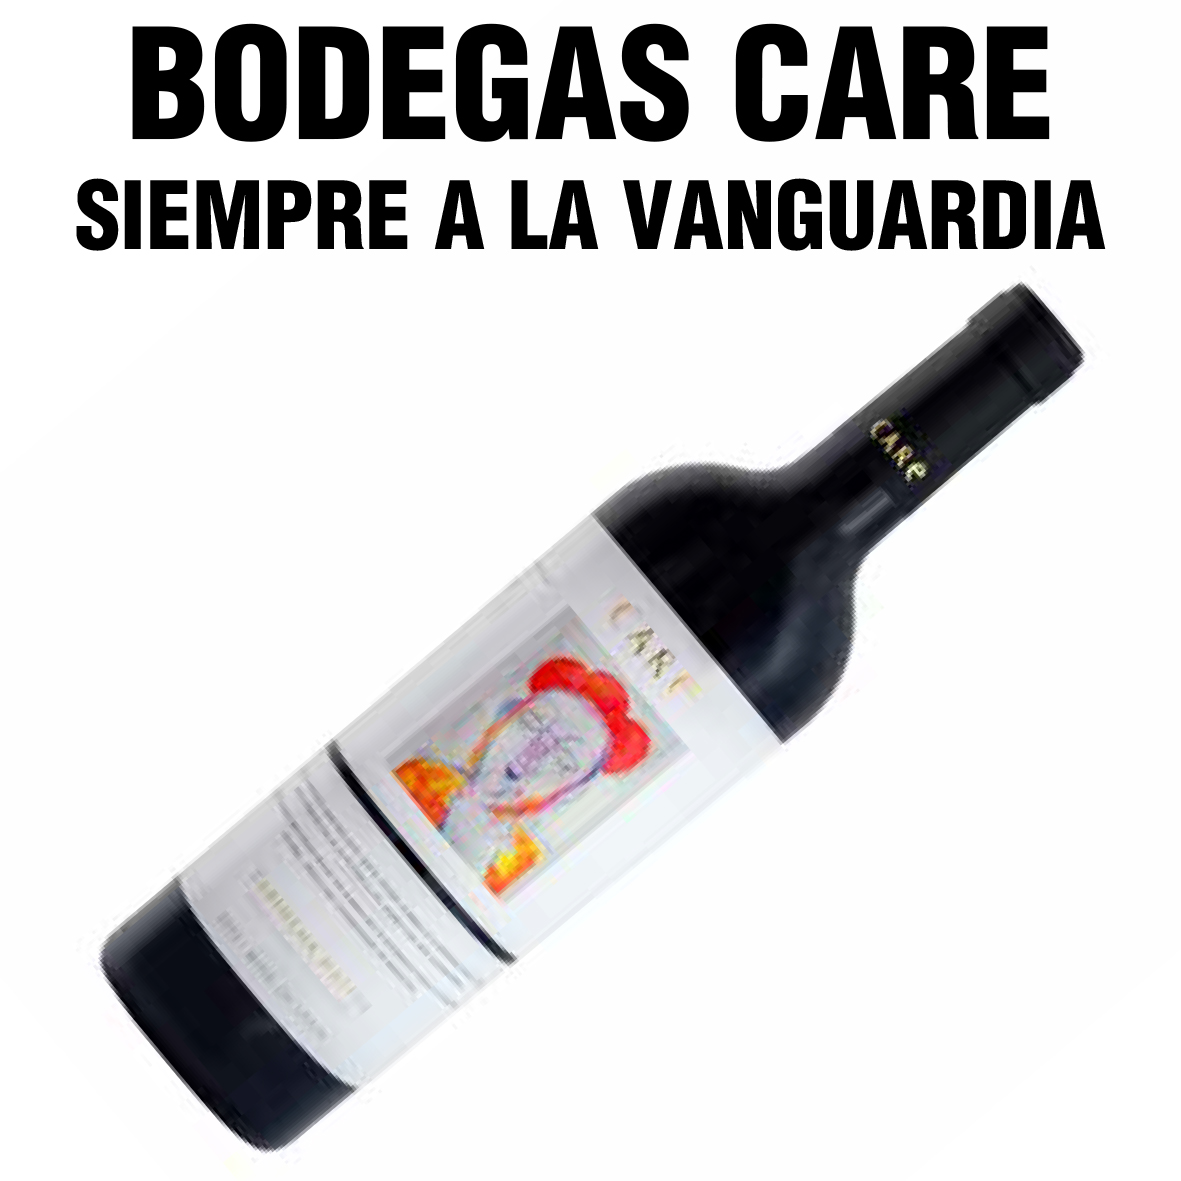 BODEGAS CARE venta on line